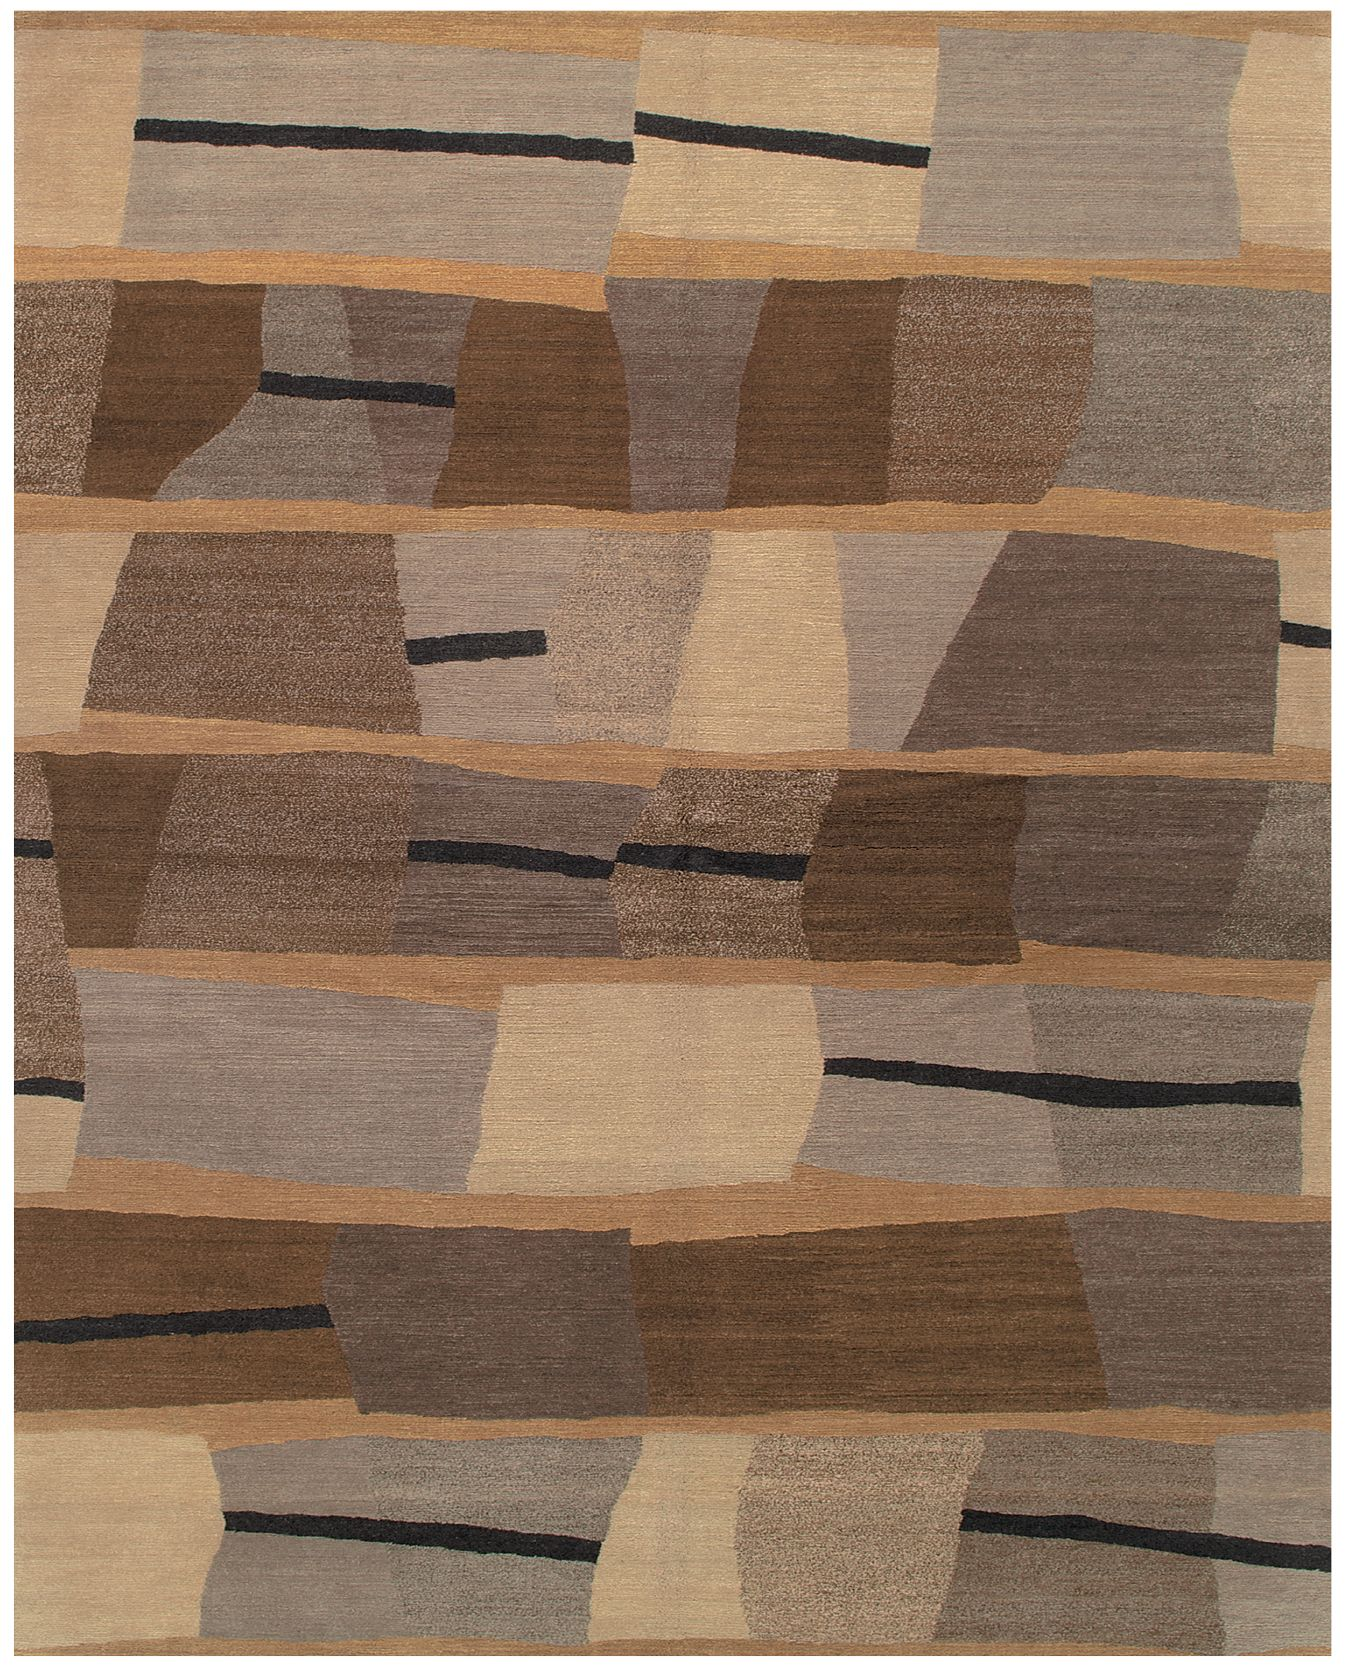 Showcasing a timeless geometric design, the Taba Blackstone contemporary Oriental carpet is hand knotted from silk and wool. Part of the Shakti collection from Tufenkian Rugs, this impressive piece is sure to turn heads. http://www.cyrusrugs.com/tufenkian-rugs-vicente-wolf-item-12387&category_id=1619&ivp=1